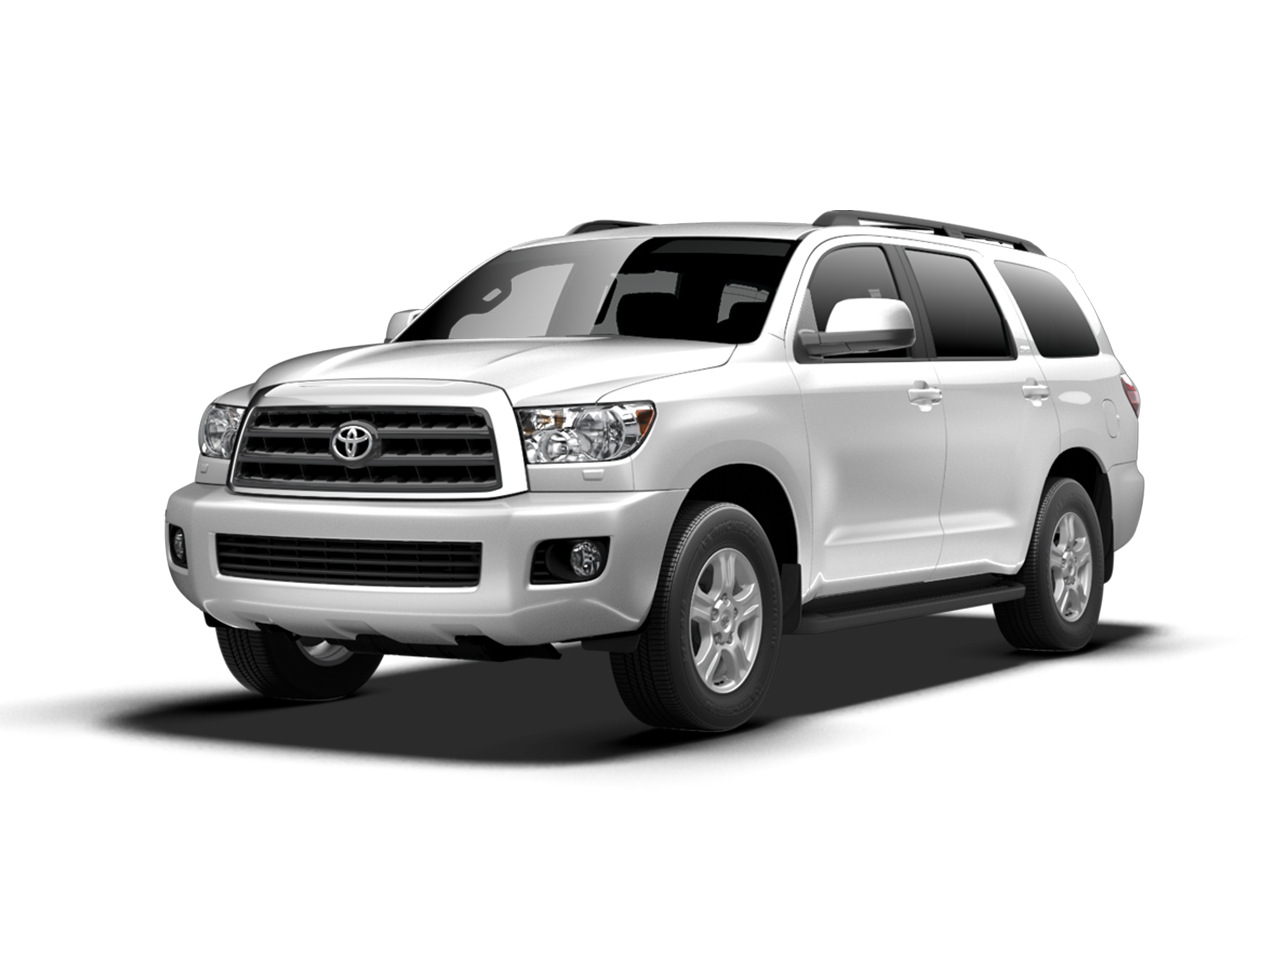 Test Drive A 2017 Toyota Sequoia at Toyota of El Cajon near San Diego